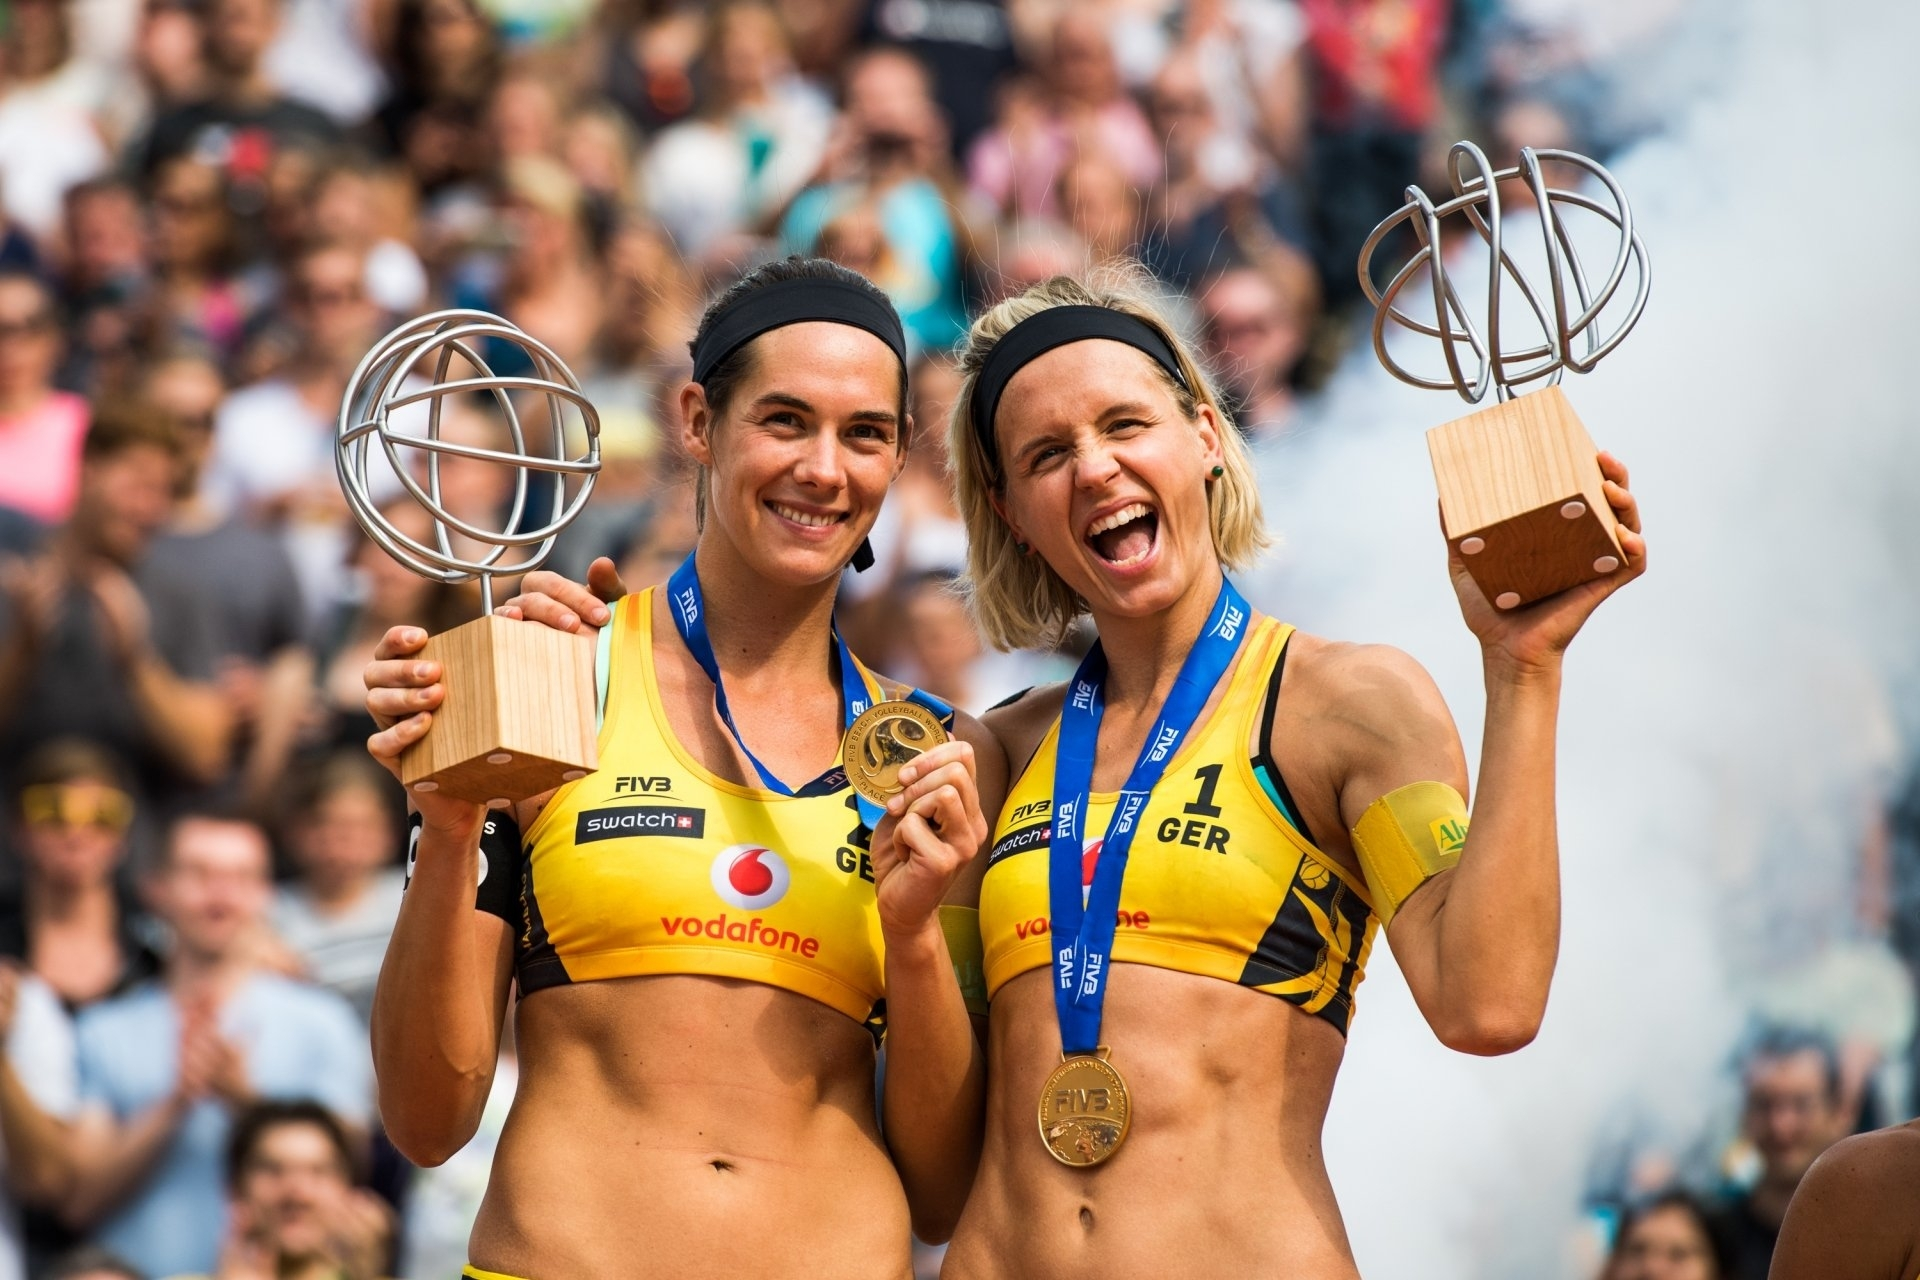 Kira (left) and Laura celebrate winning the World Tour Finals in Hamburg this year